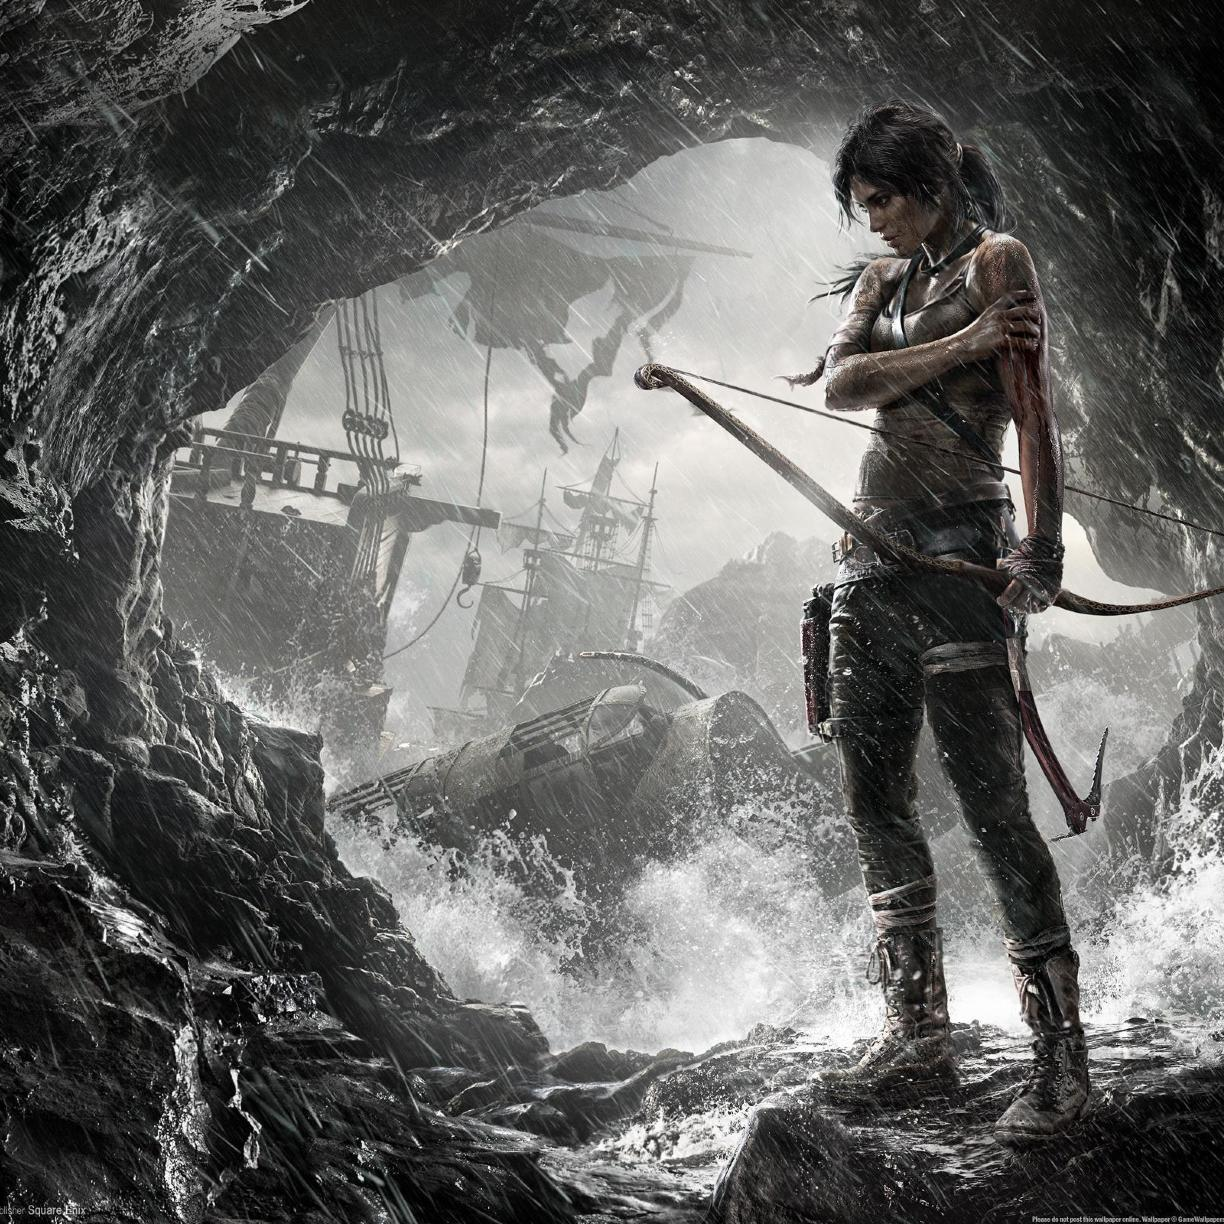 Tomb Rider Wallpaper: Tomb Raider 2 Game Art, Full HD 2K Wallpaper